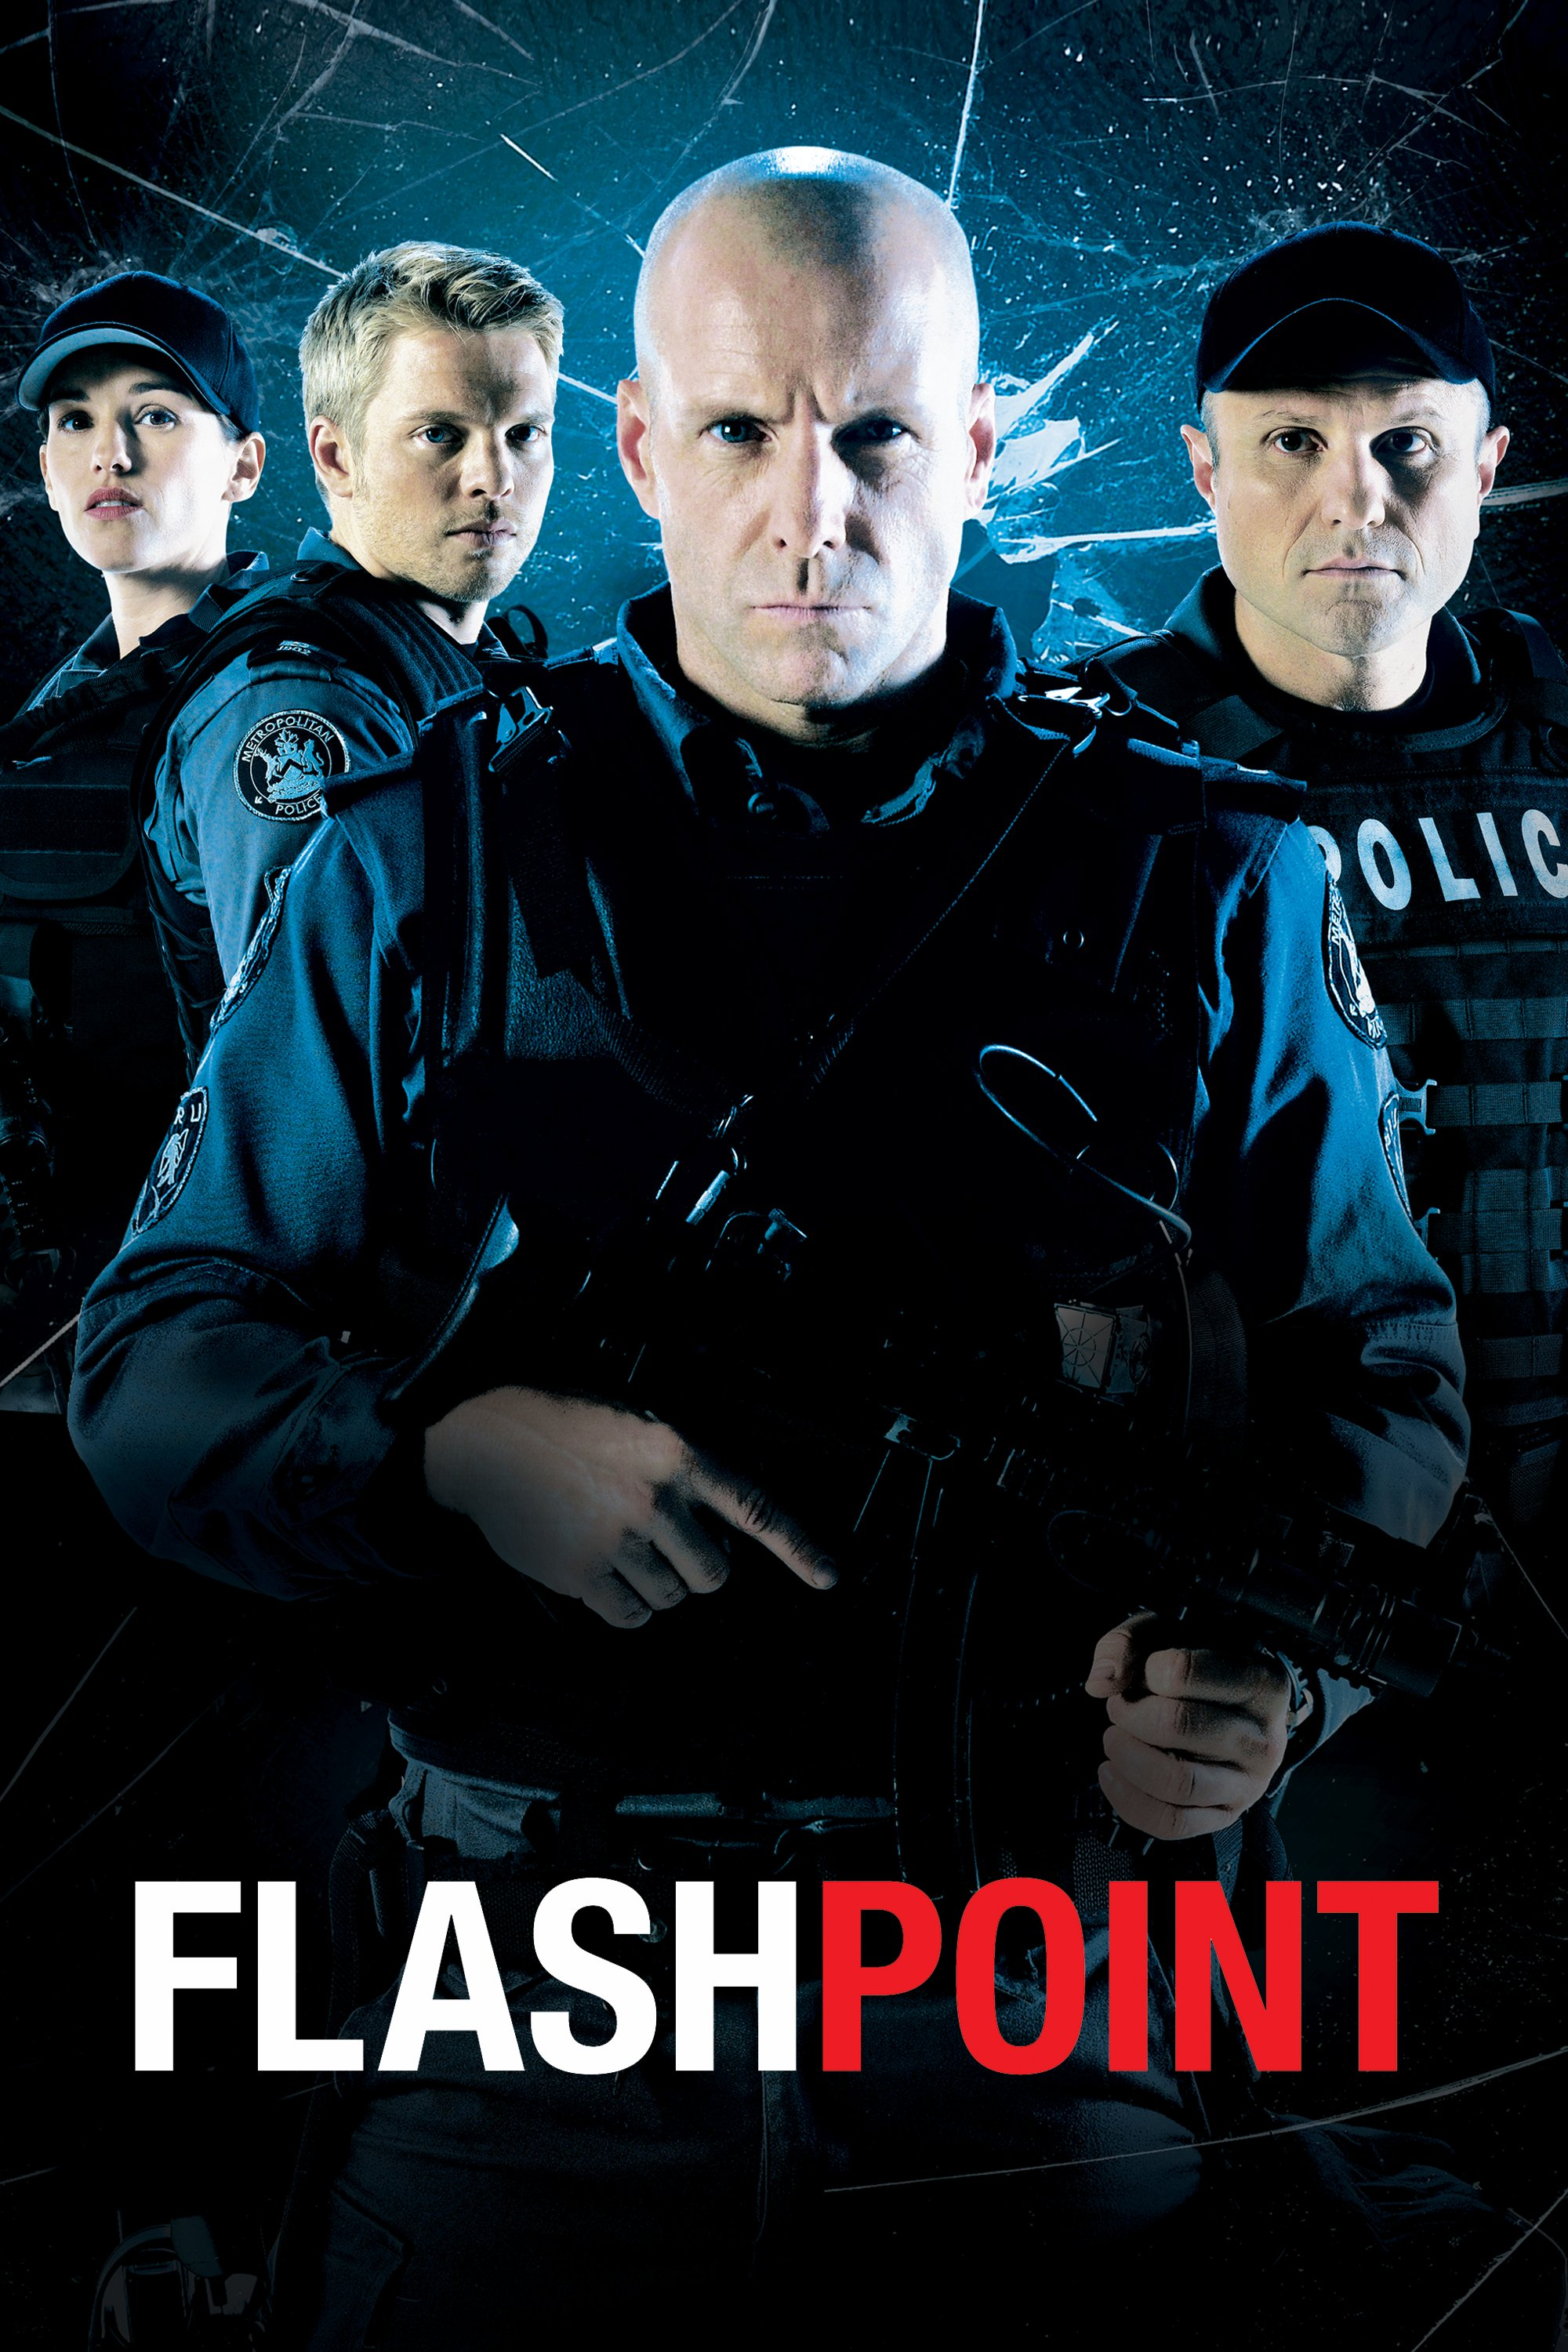 flashpoint full movie watch online